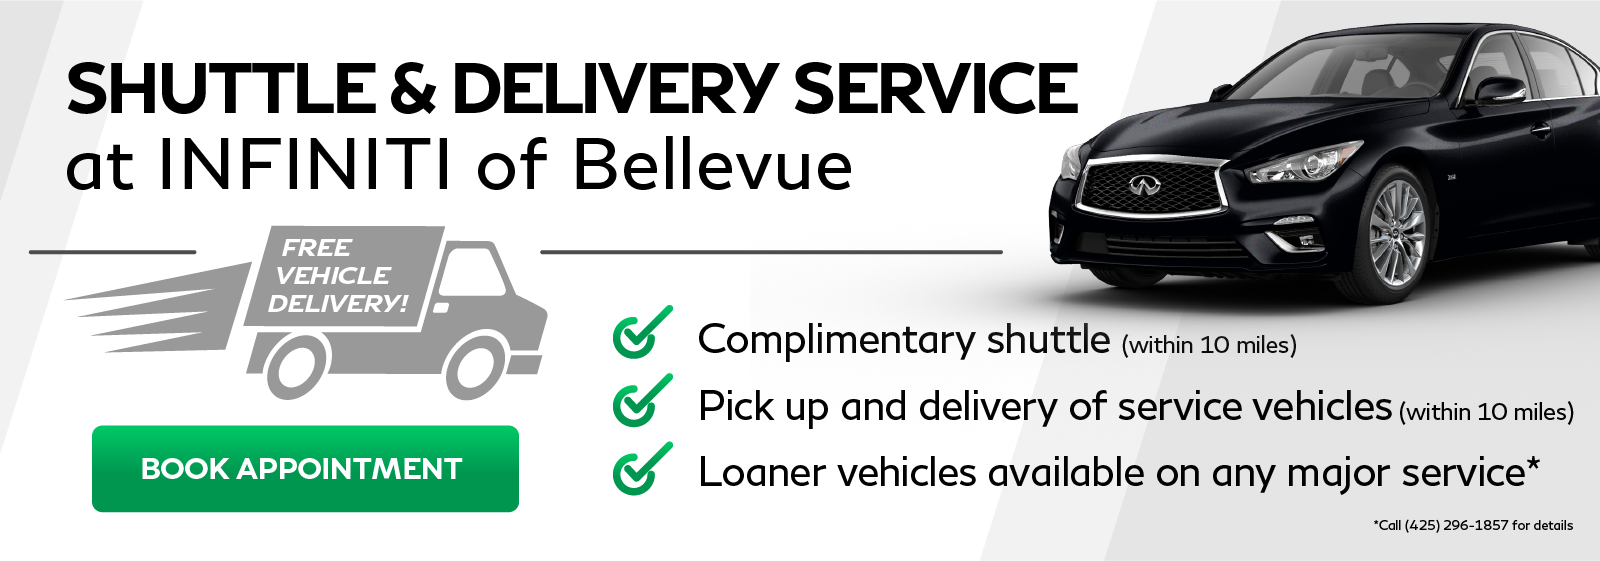 Shuttle & delivery service at INFINITI of Bellevue! Click to book appointment.